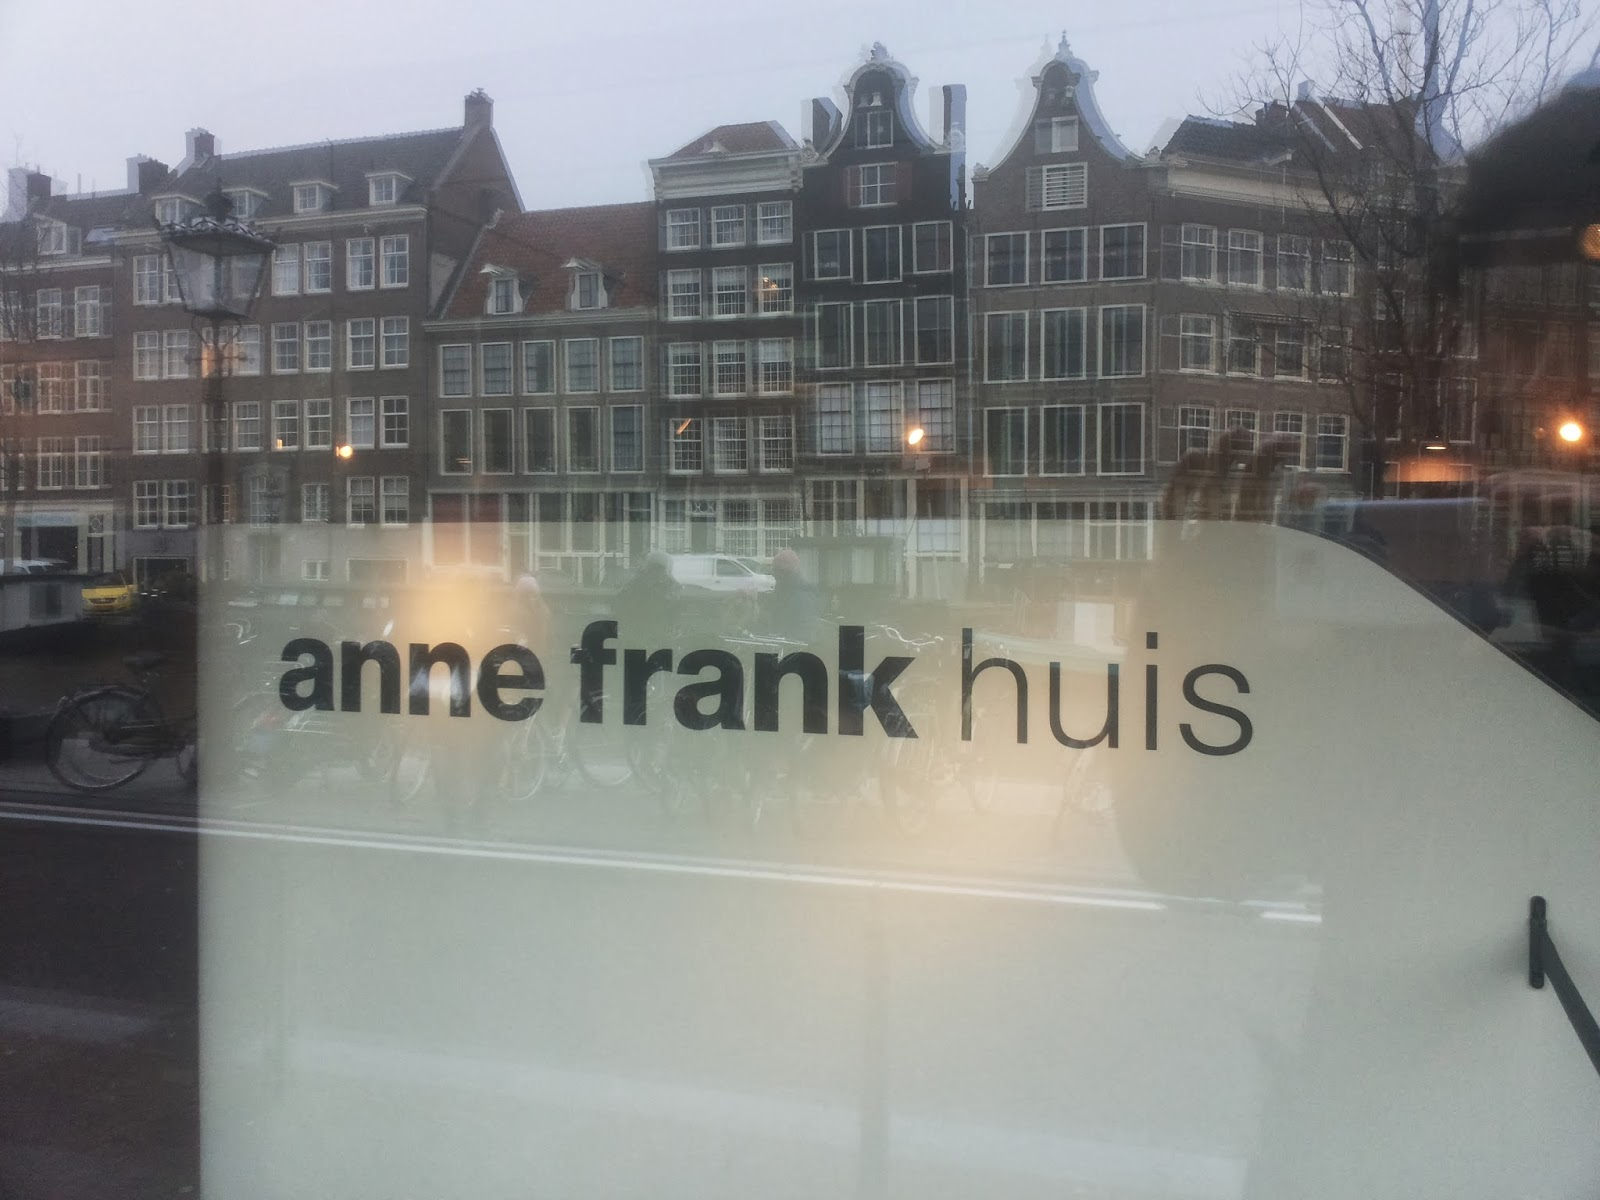 anne frank house sightseeing